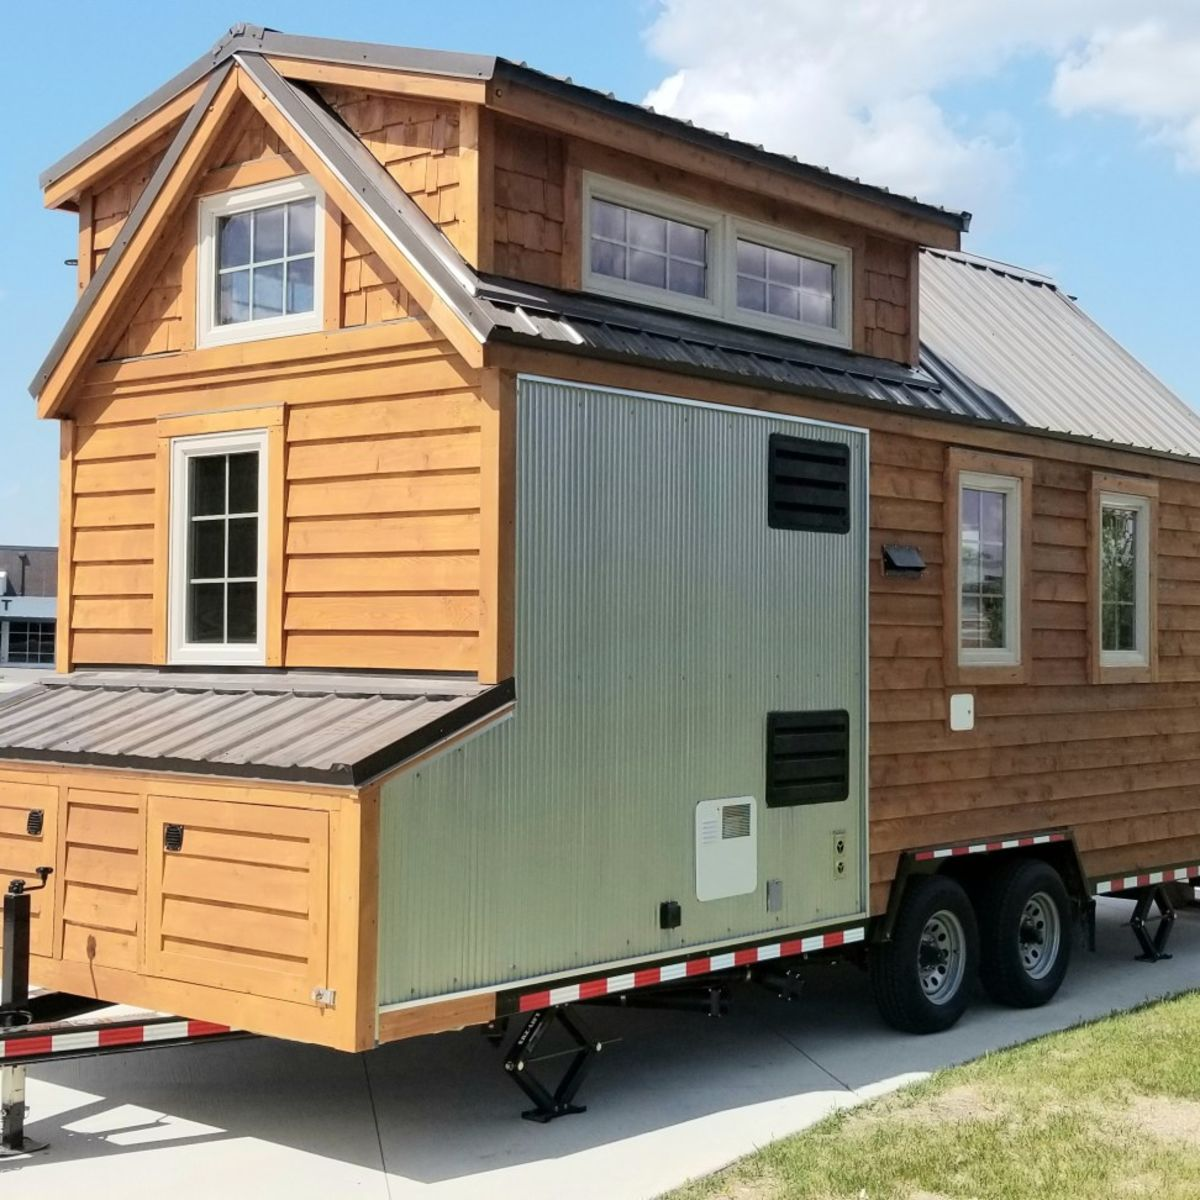 20 Tiny House With Exterior Storage Compartments And Fold Down Deck Tiny House For Sale In Hutchinson Minnesota Tiny House Listings